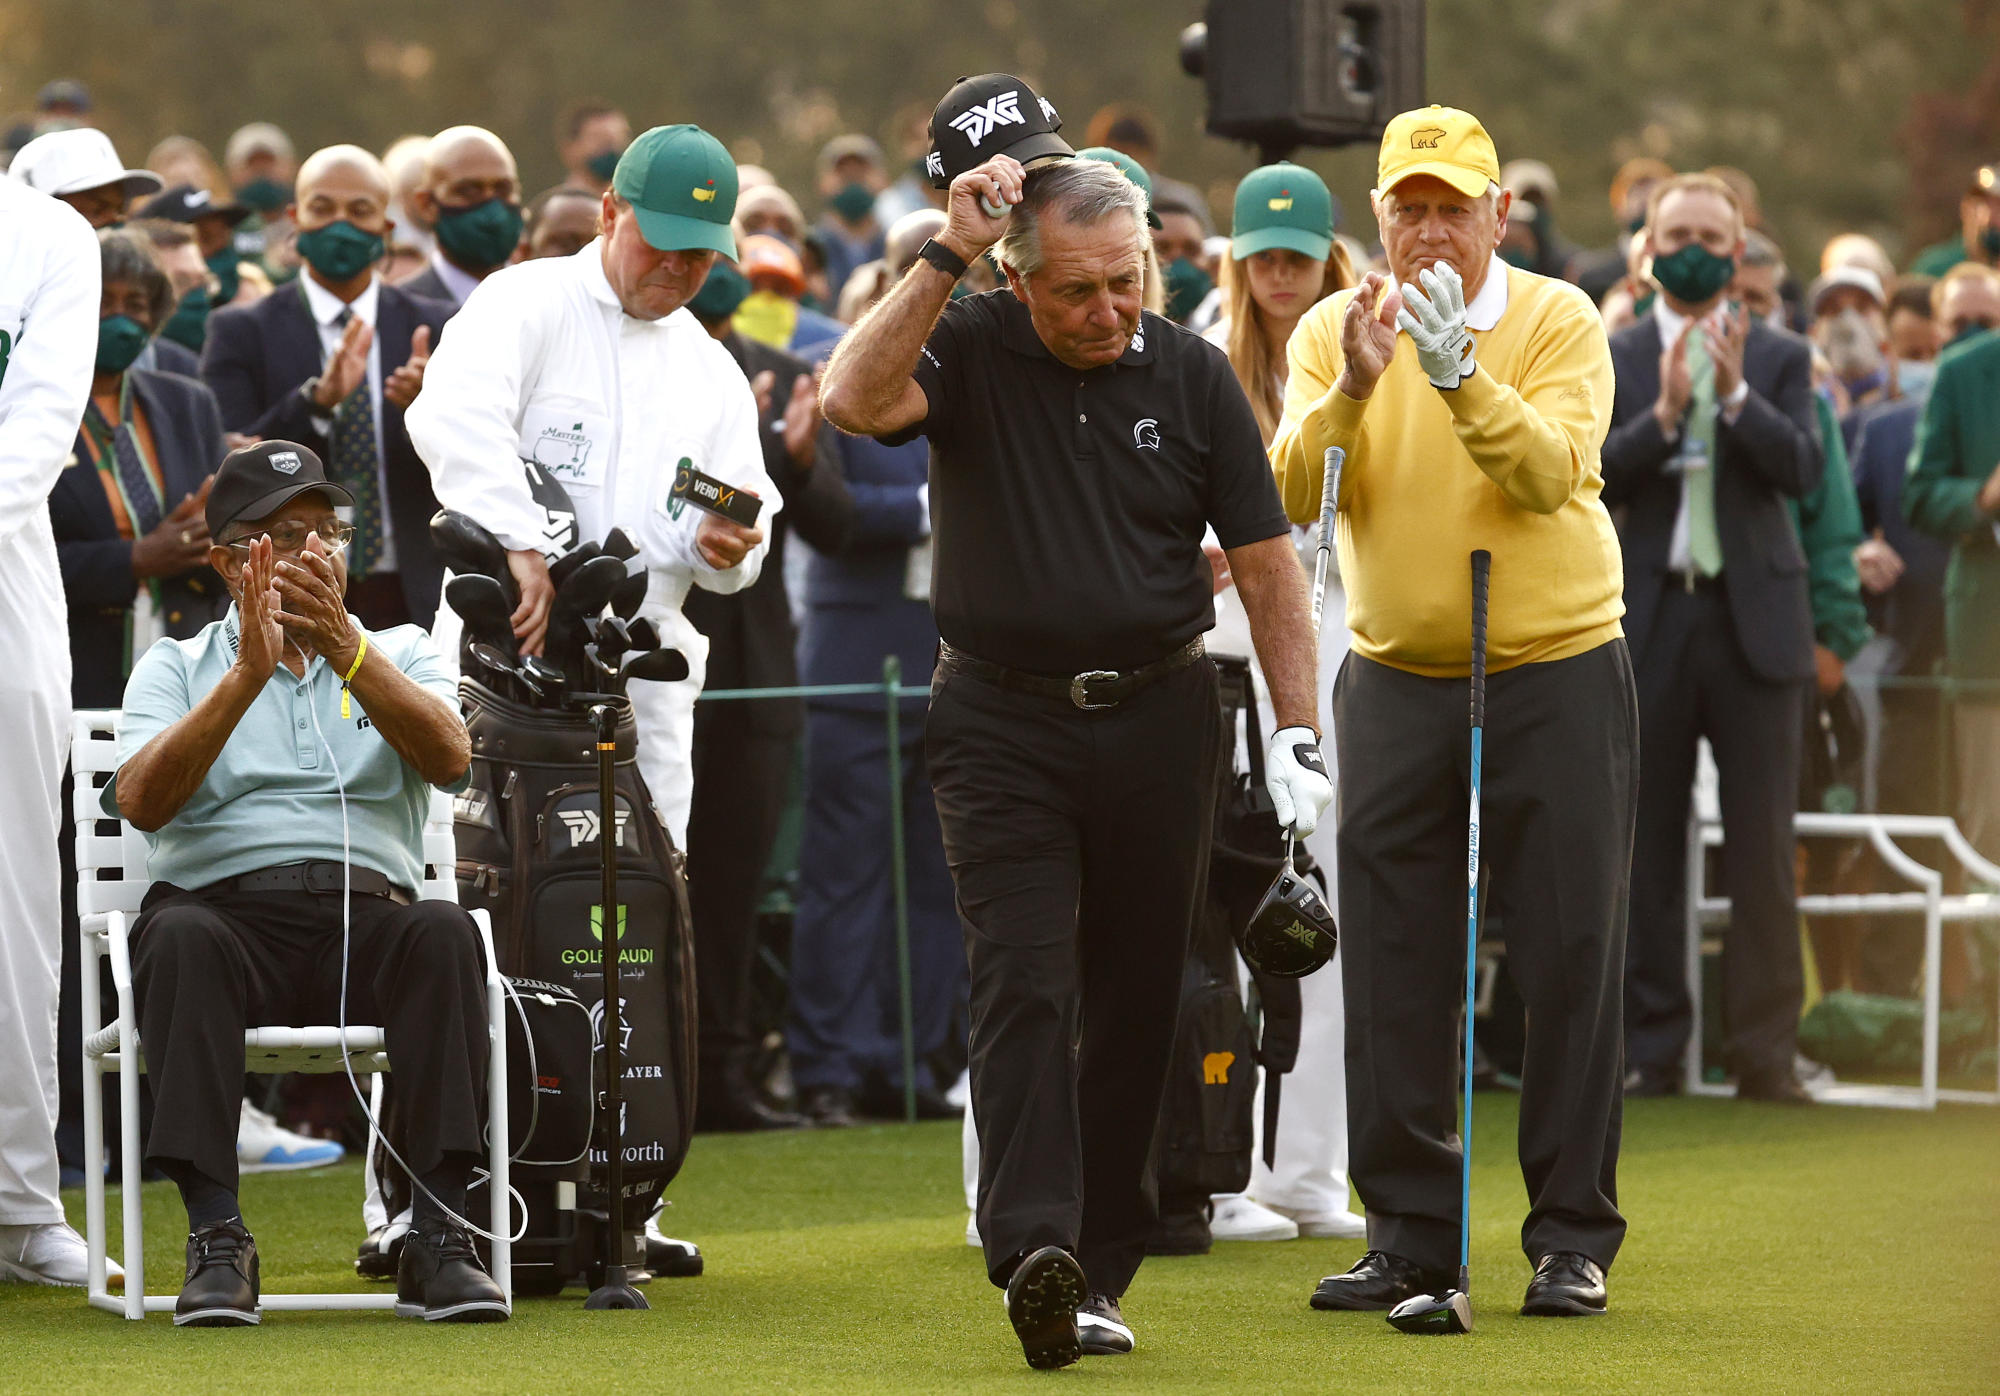 Gary Player's son apparently 'banned' from Masters after opening ceremony stunt